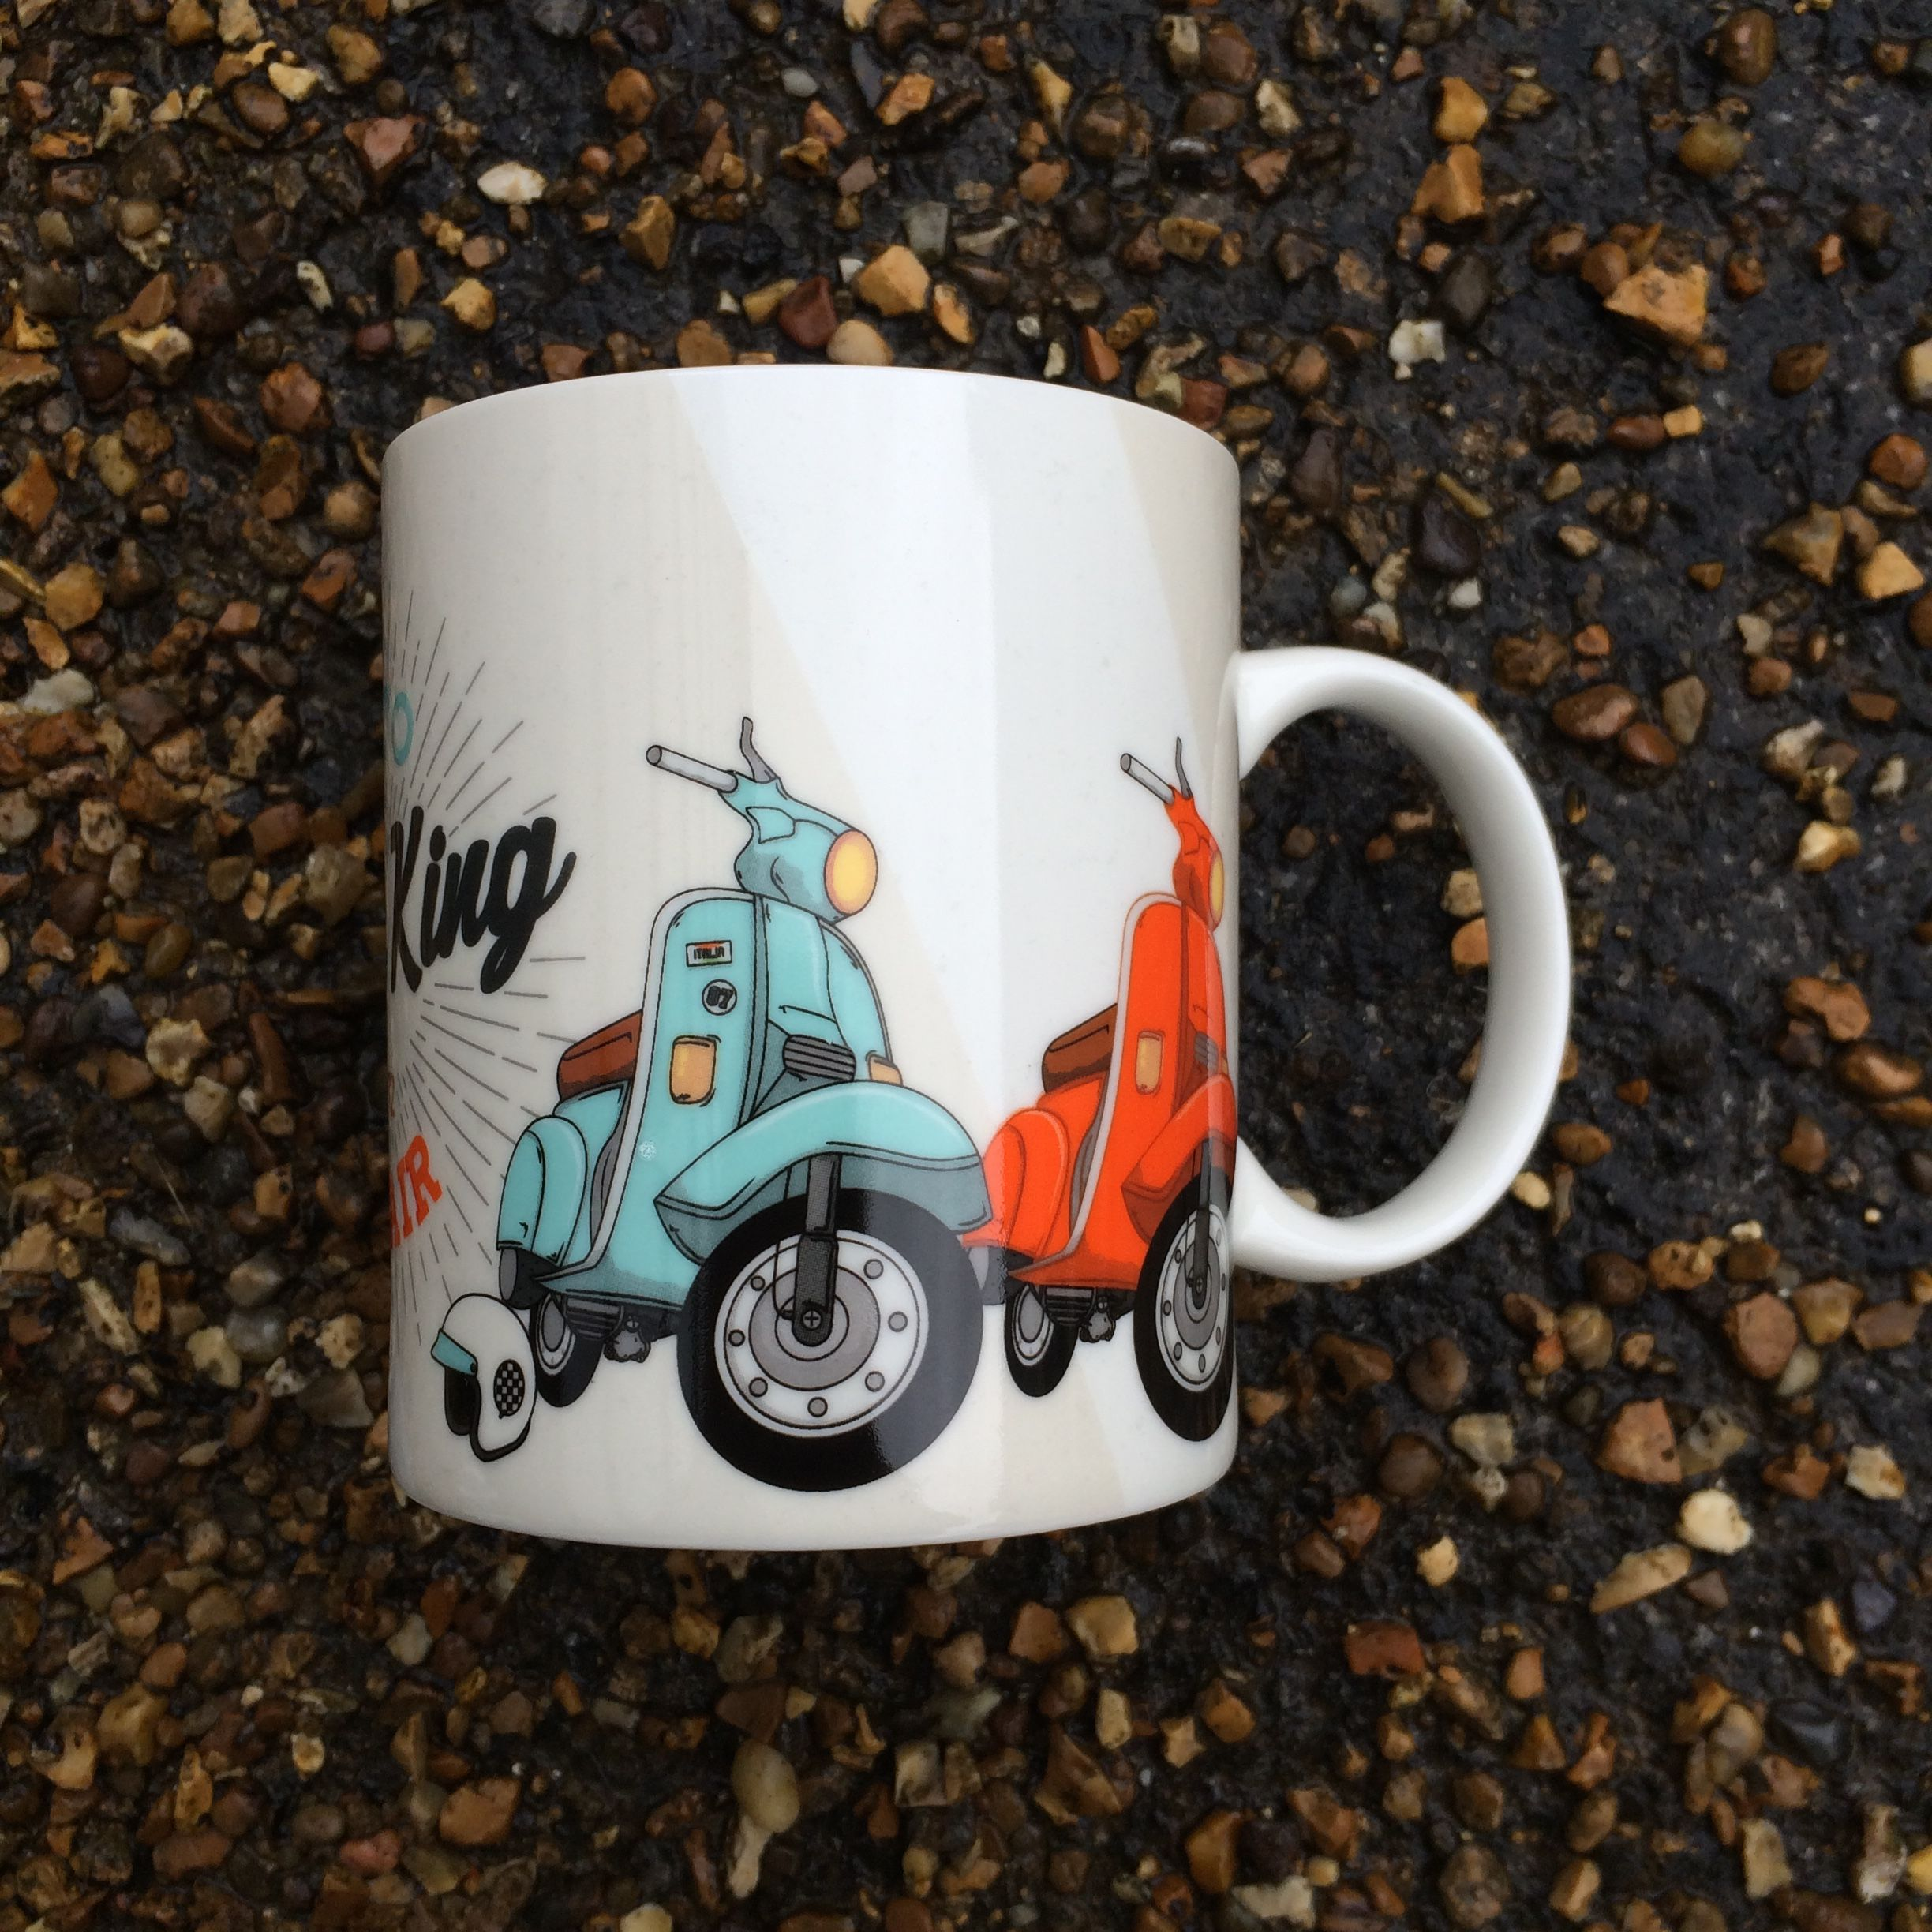 Jack Evans 'Speed King' Scooter New Bone China Mug #mug #giftsforhim #forhim #giftideas